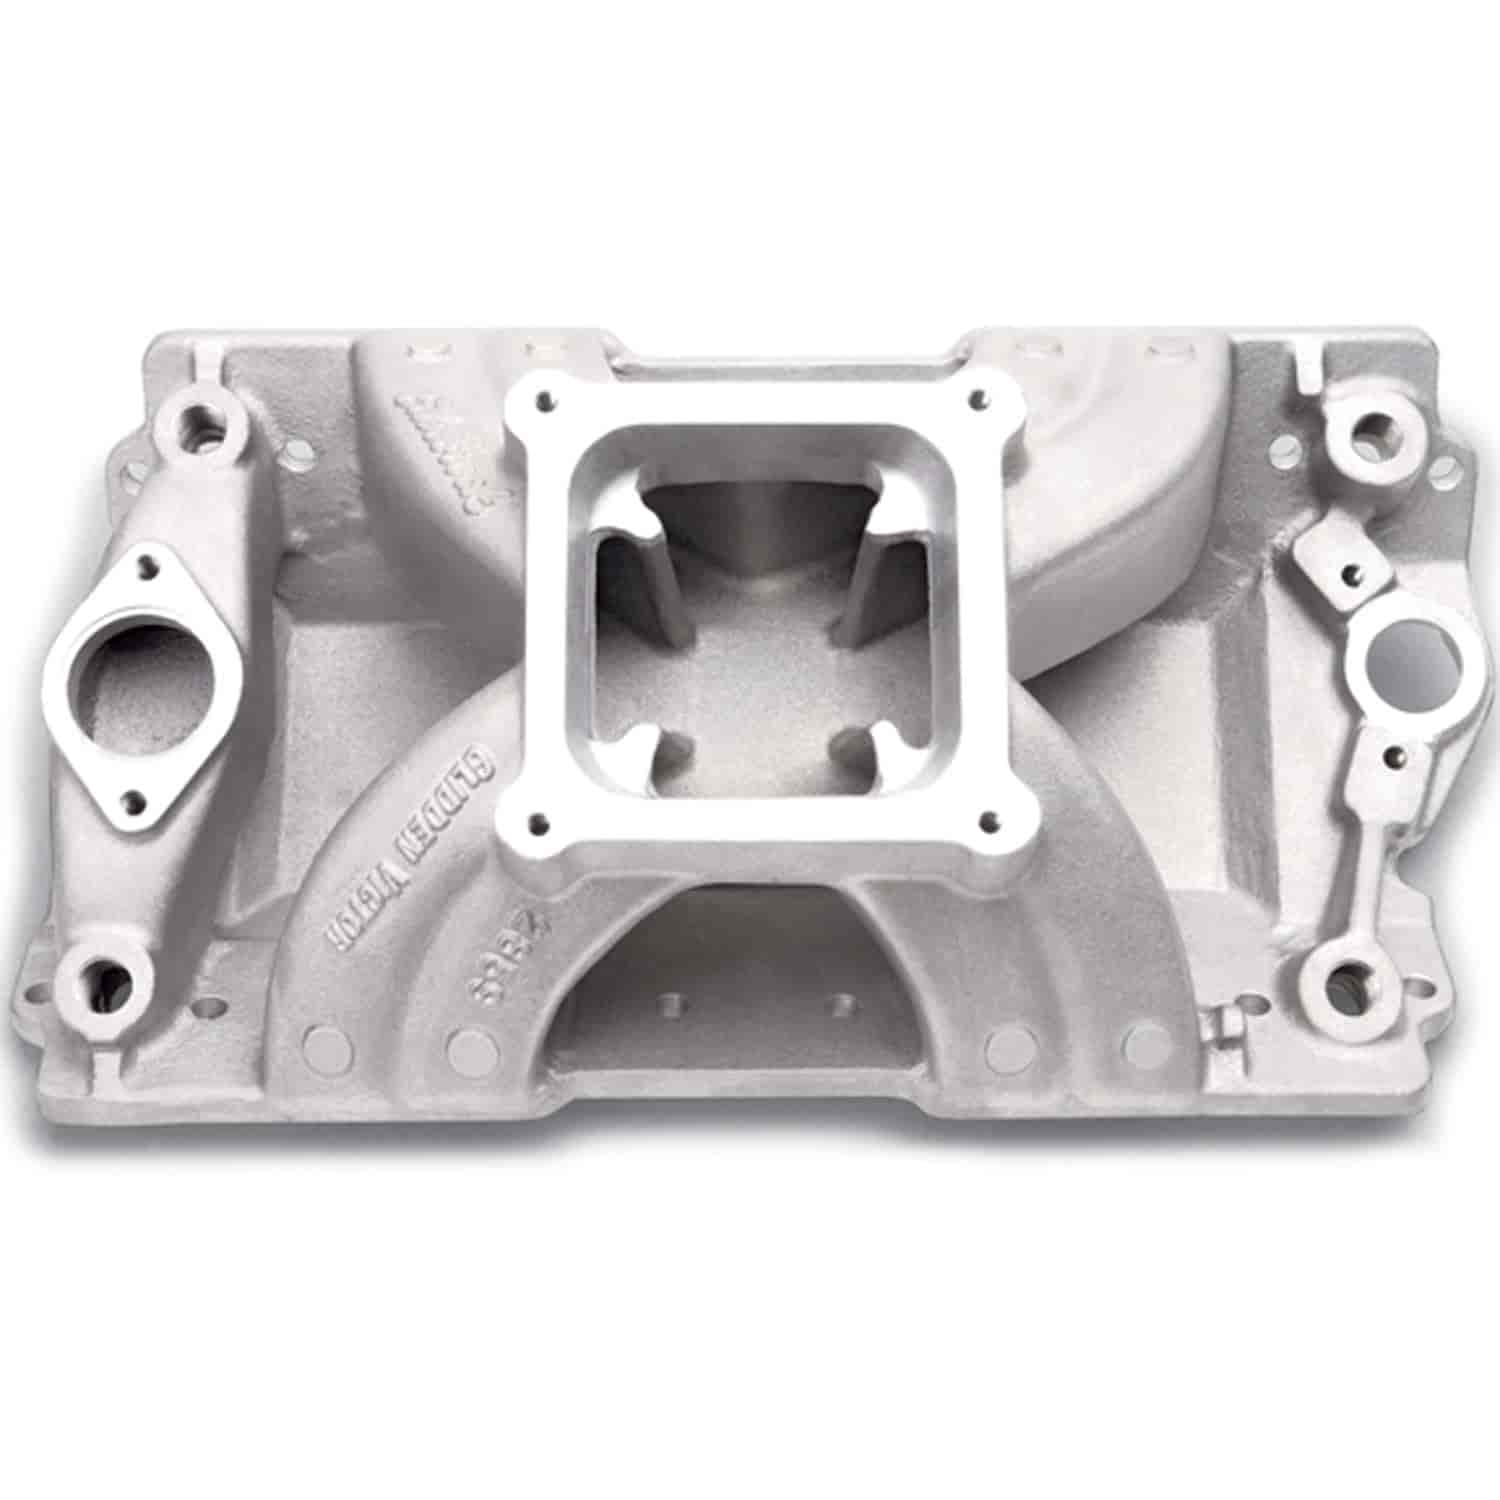 Edelbrock 2859 - Edelbrock Victor Series Intake Manifolds for Small Block Chevy